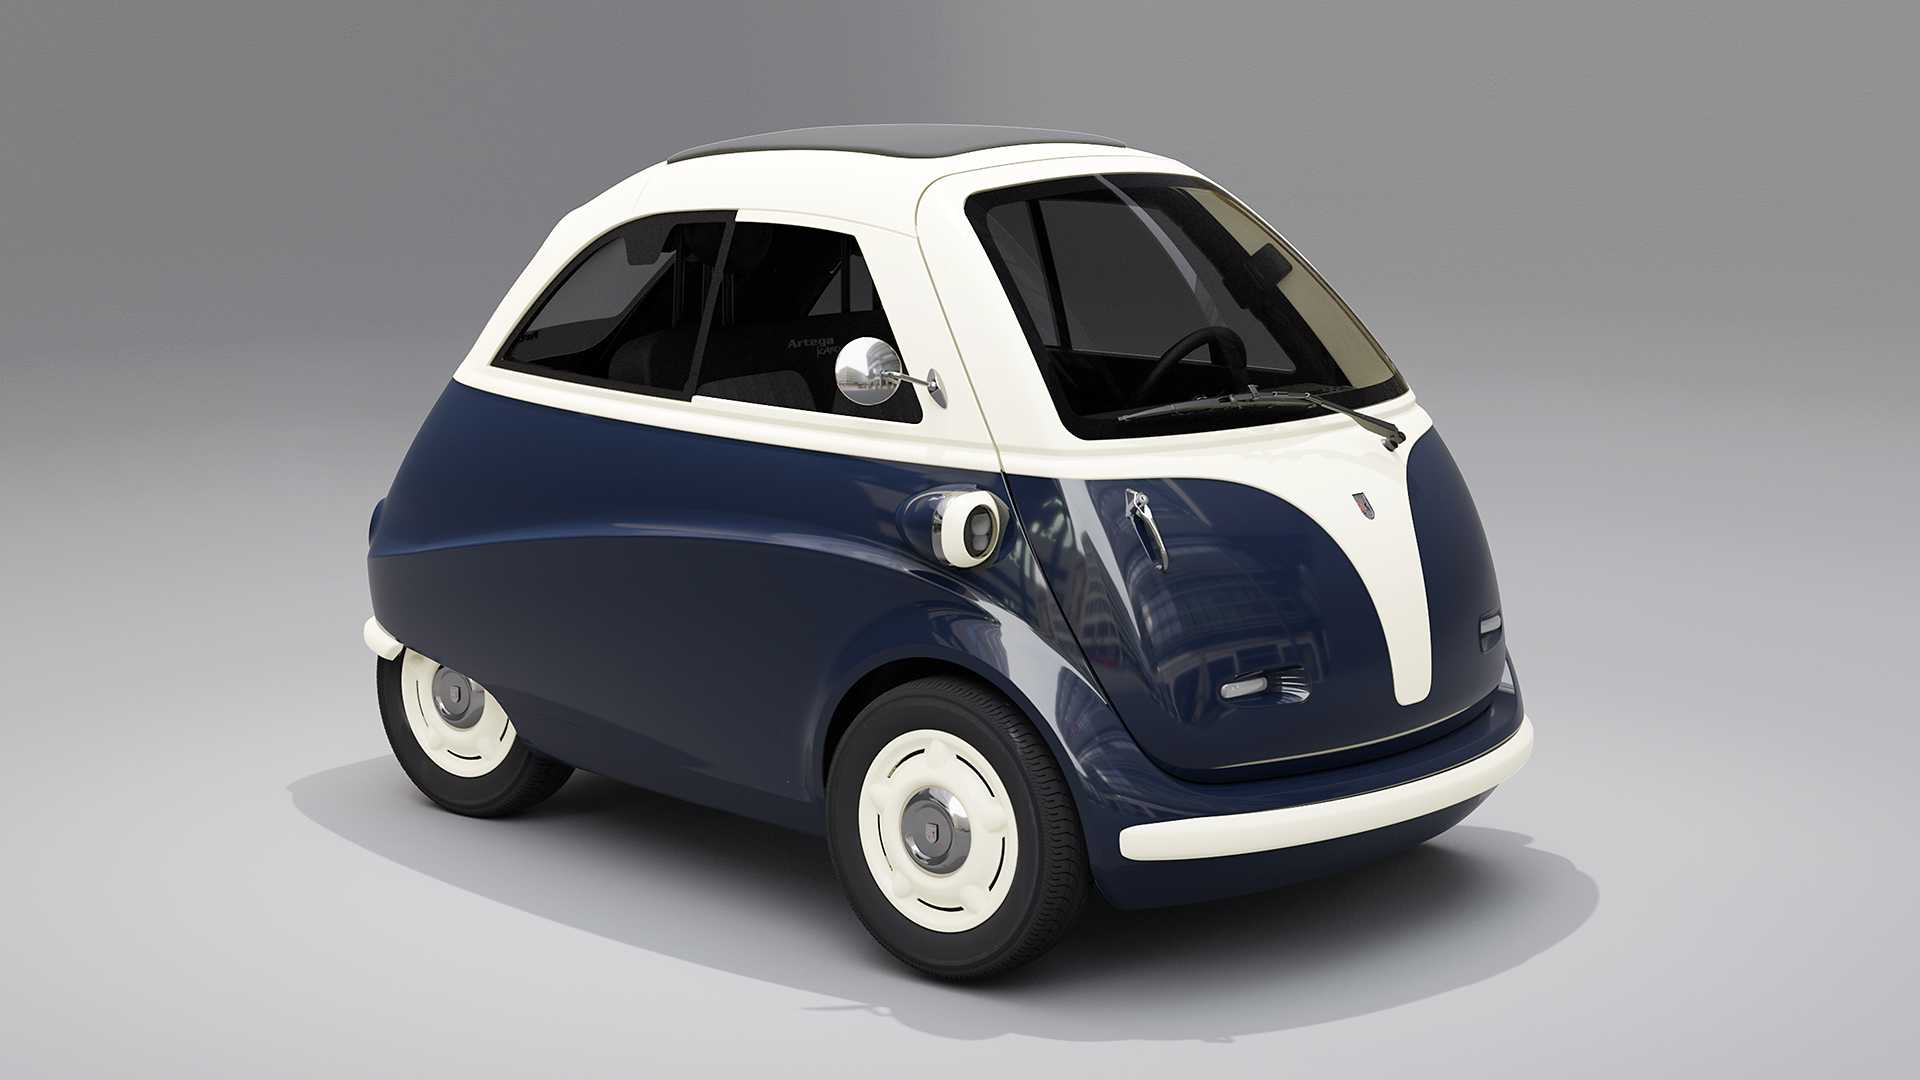 Swiss niche carmaker Micro Mobility Systems promised in 2018 that it would revive the Isetta supermini series by 2021. The Microlino EV has received 16,000 pre-orders since – but it looks like it has a competitor.